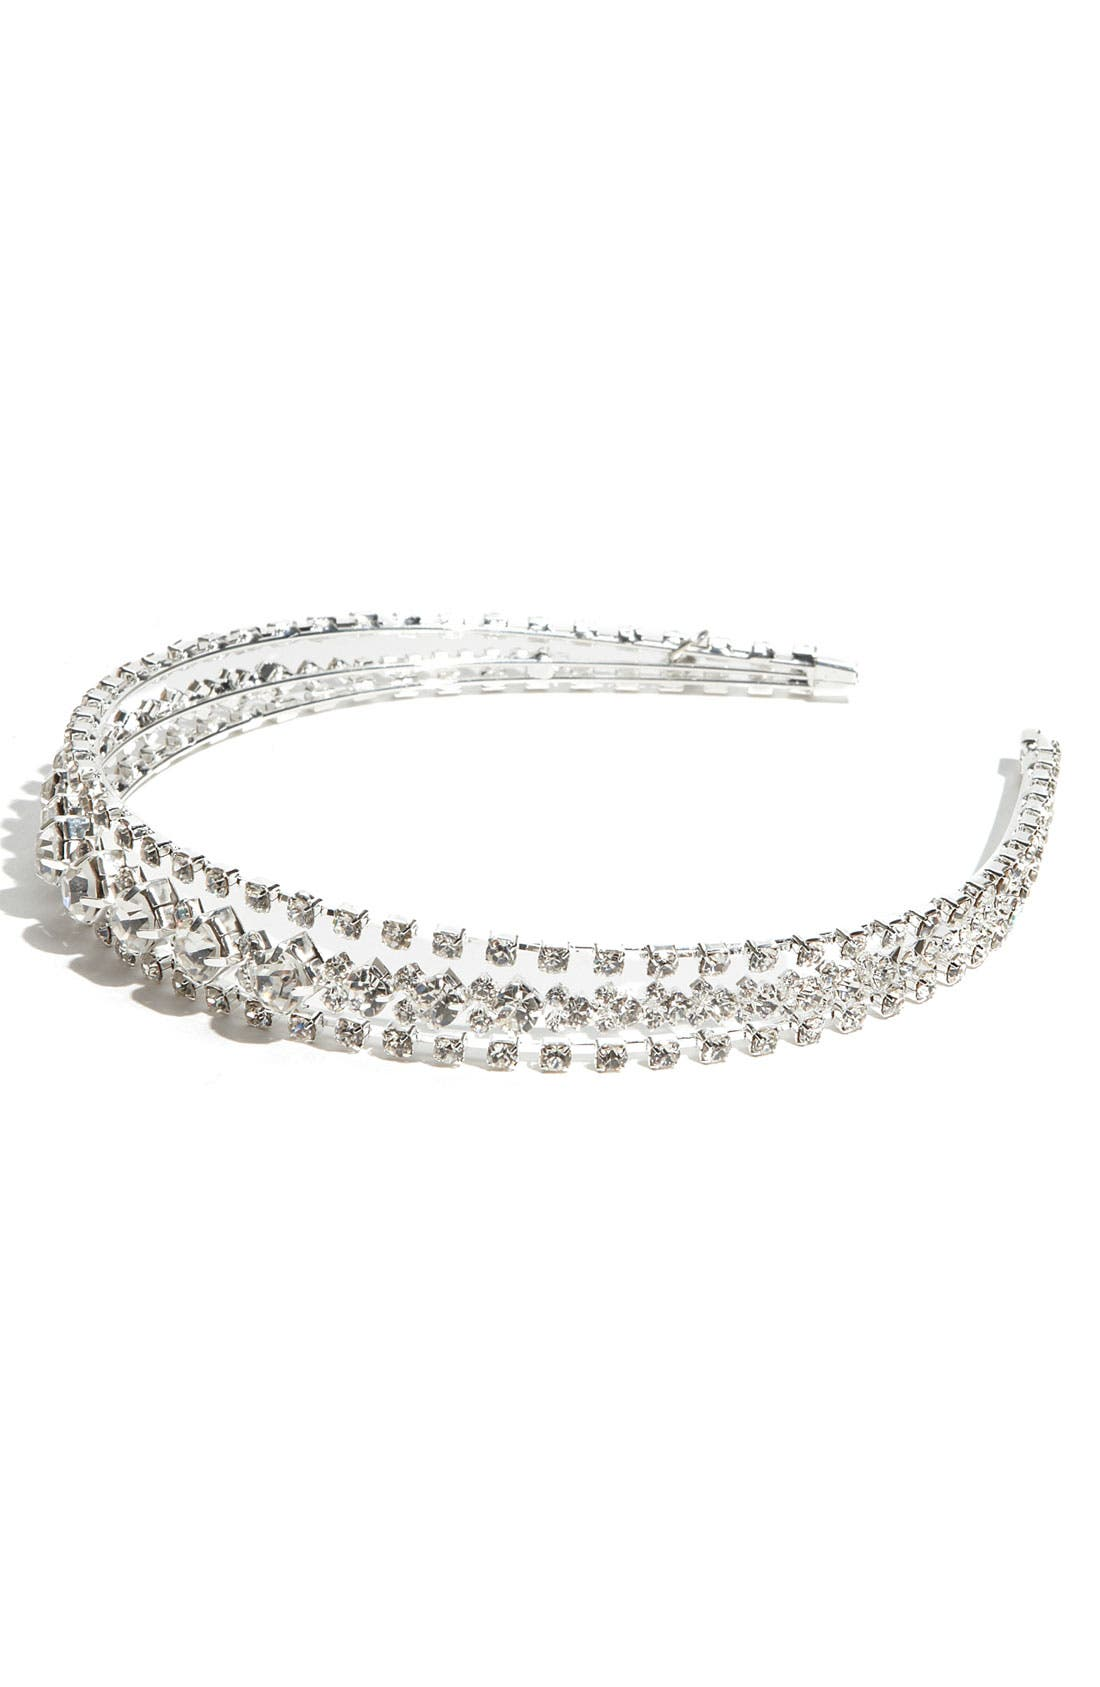 Alternate Image 1 Selected - Tasha 'Triple Crystal' Headband